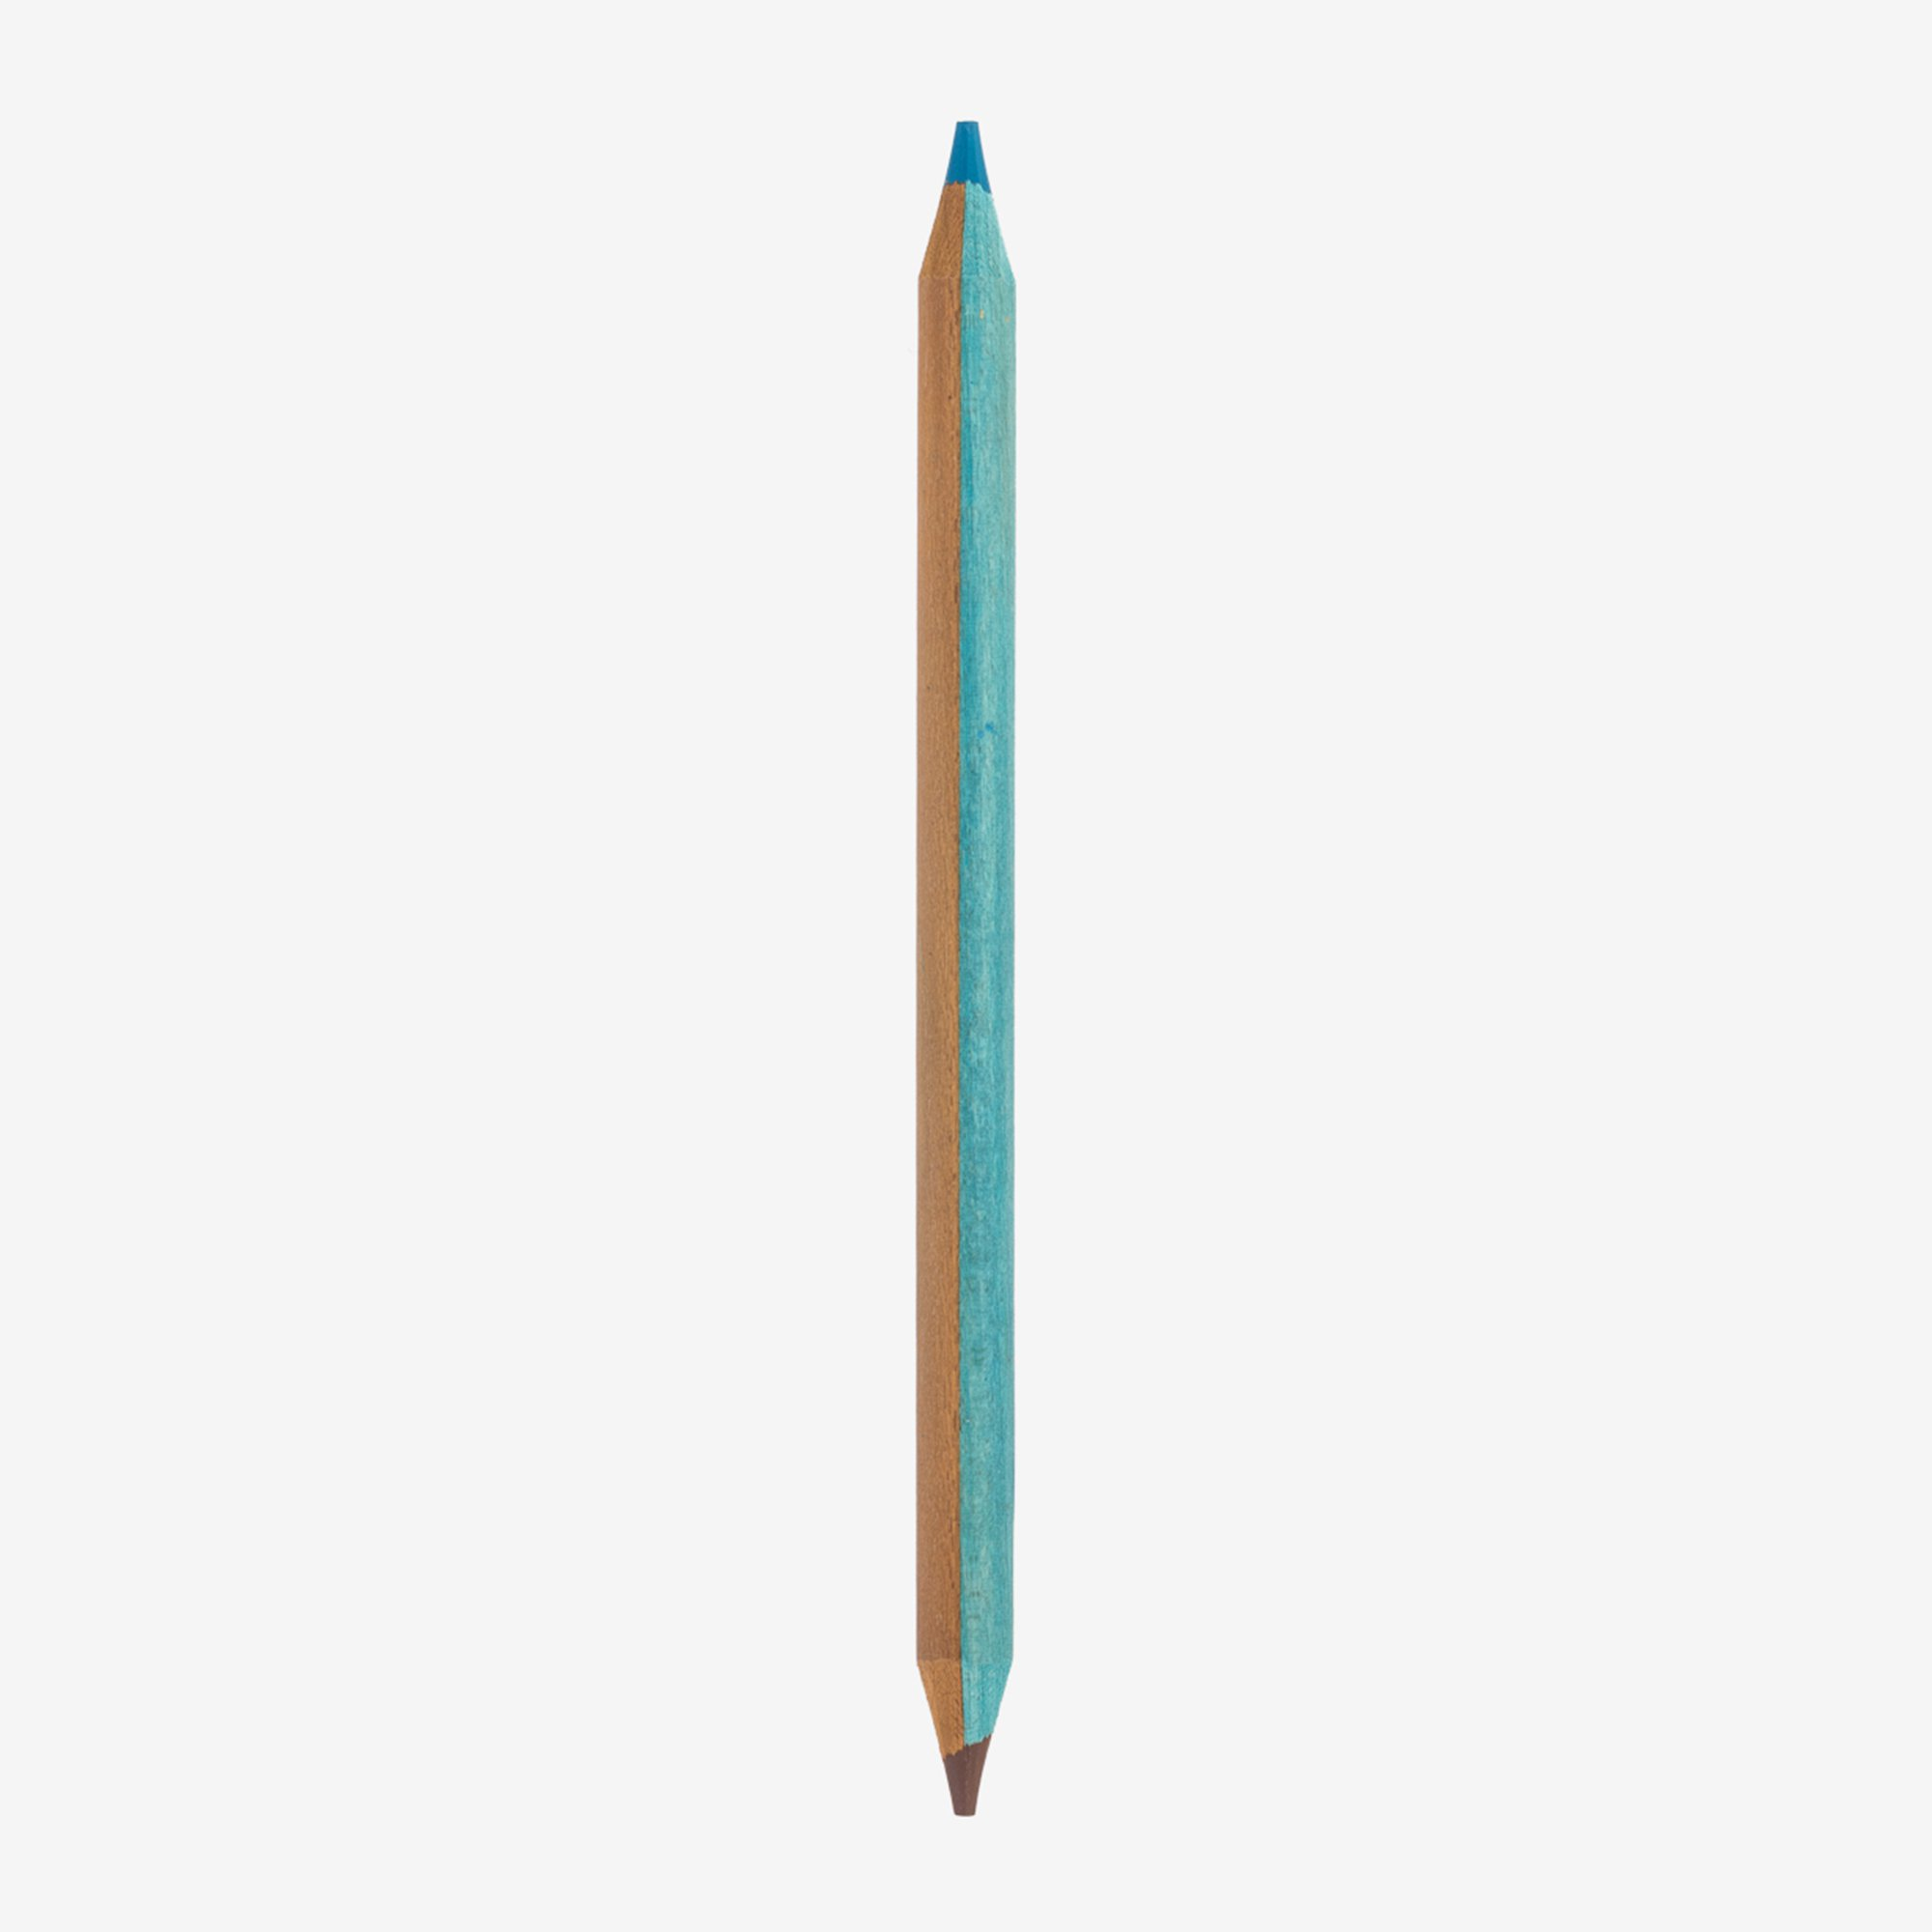 TWO-COLOUR PENCIL - LIGHT BLUE AND BROWN